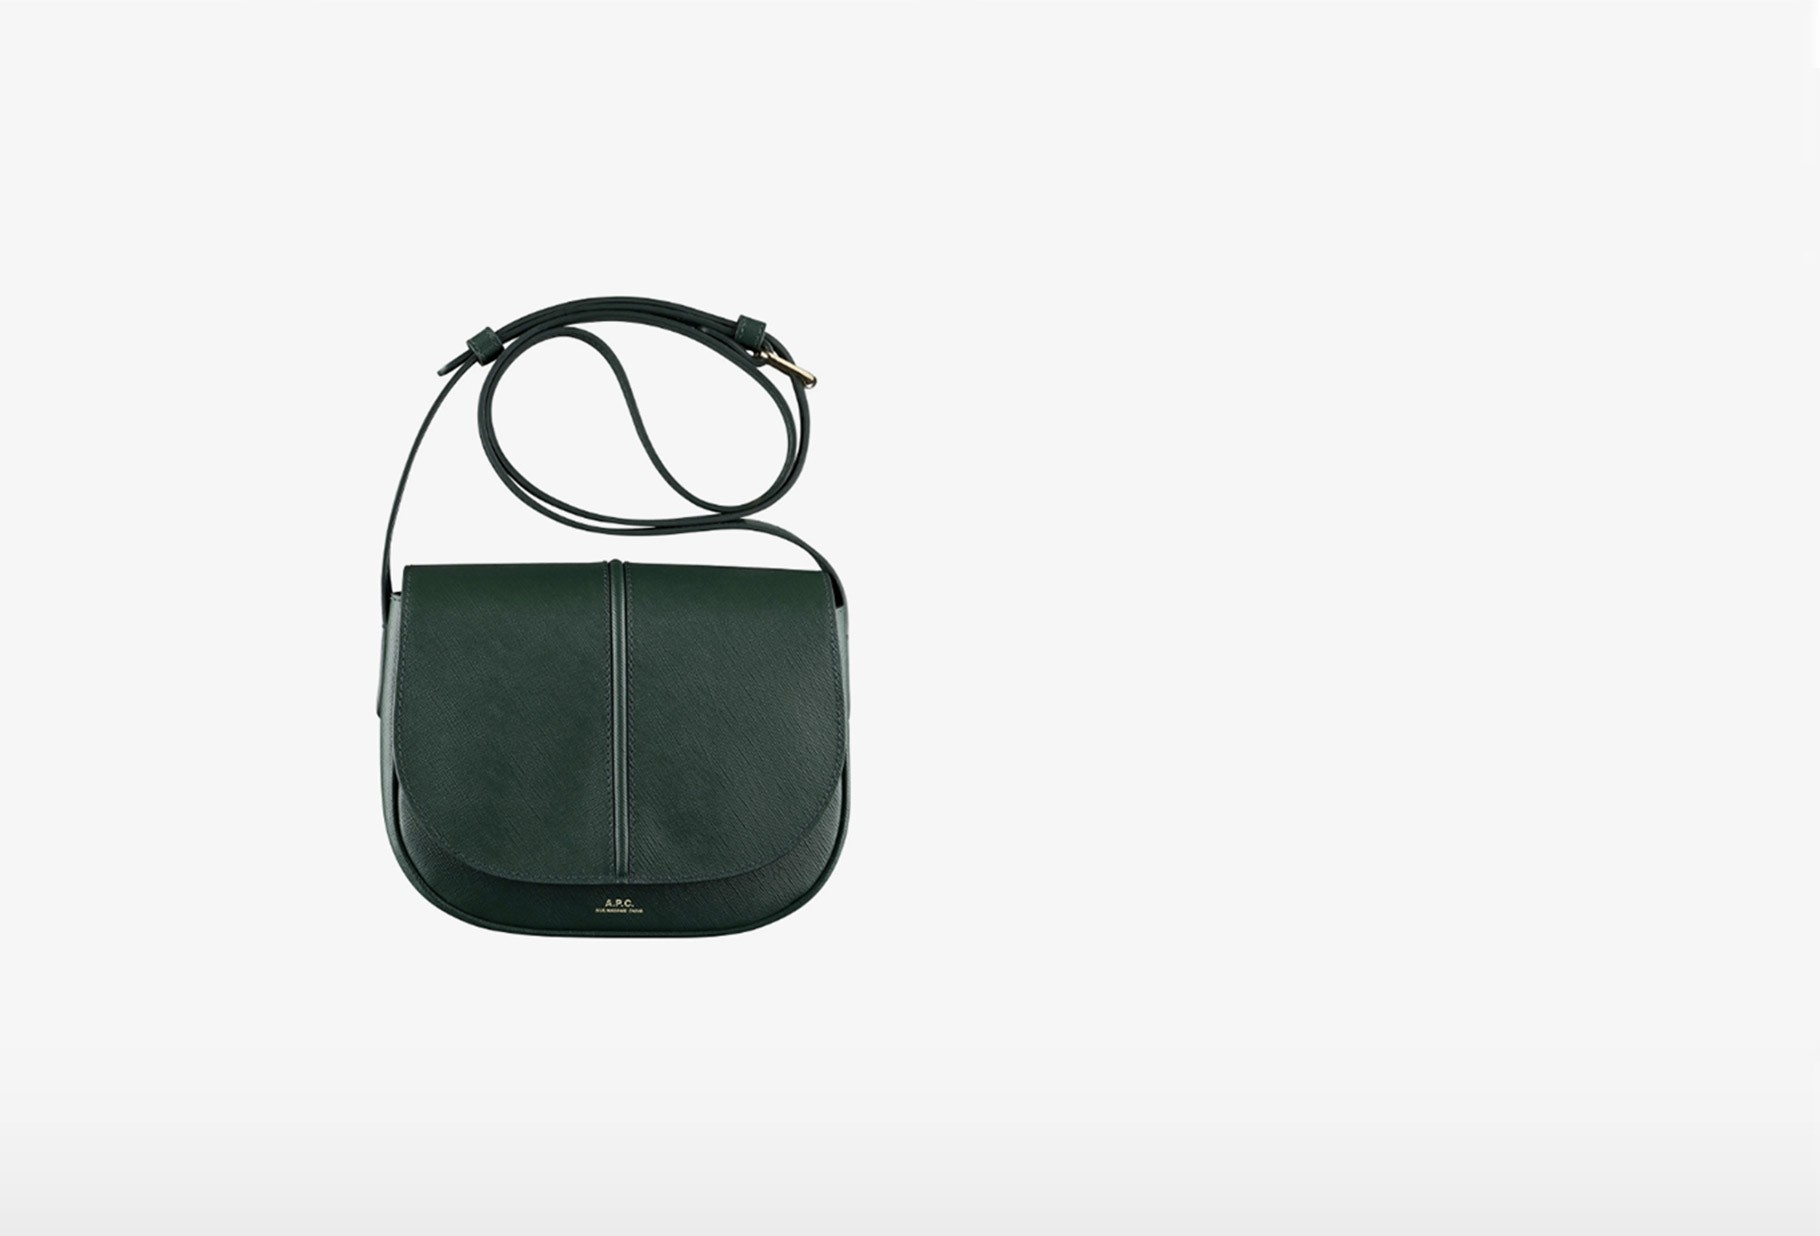 A.P.C. FOR WOMAN / Sac betty cuir embosse Vert sapin